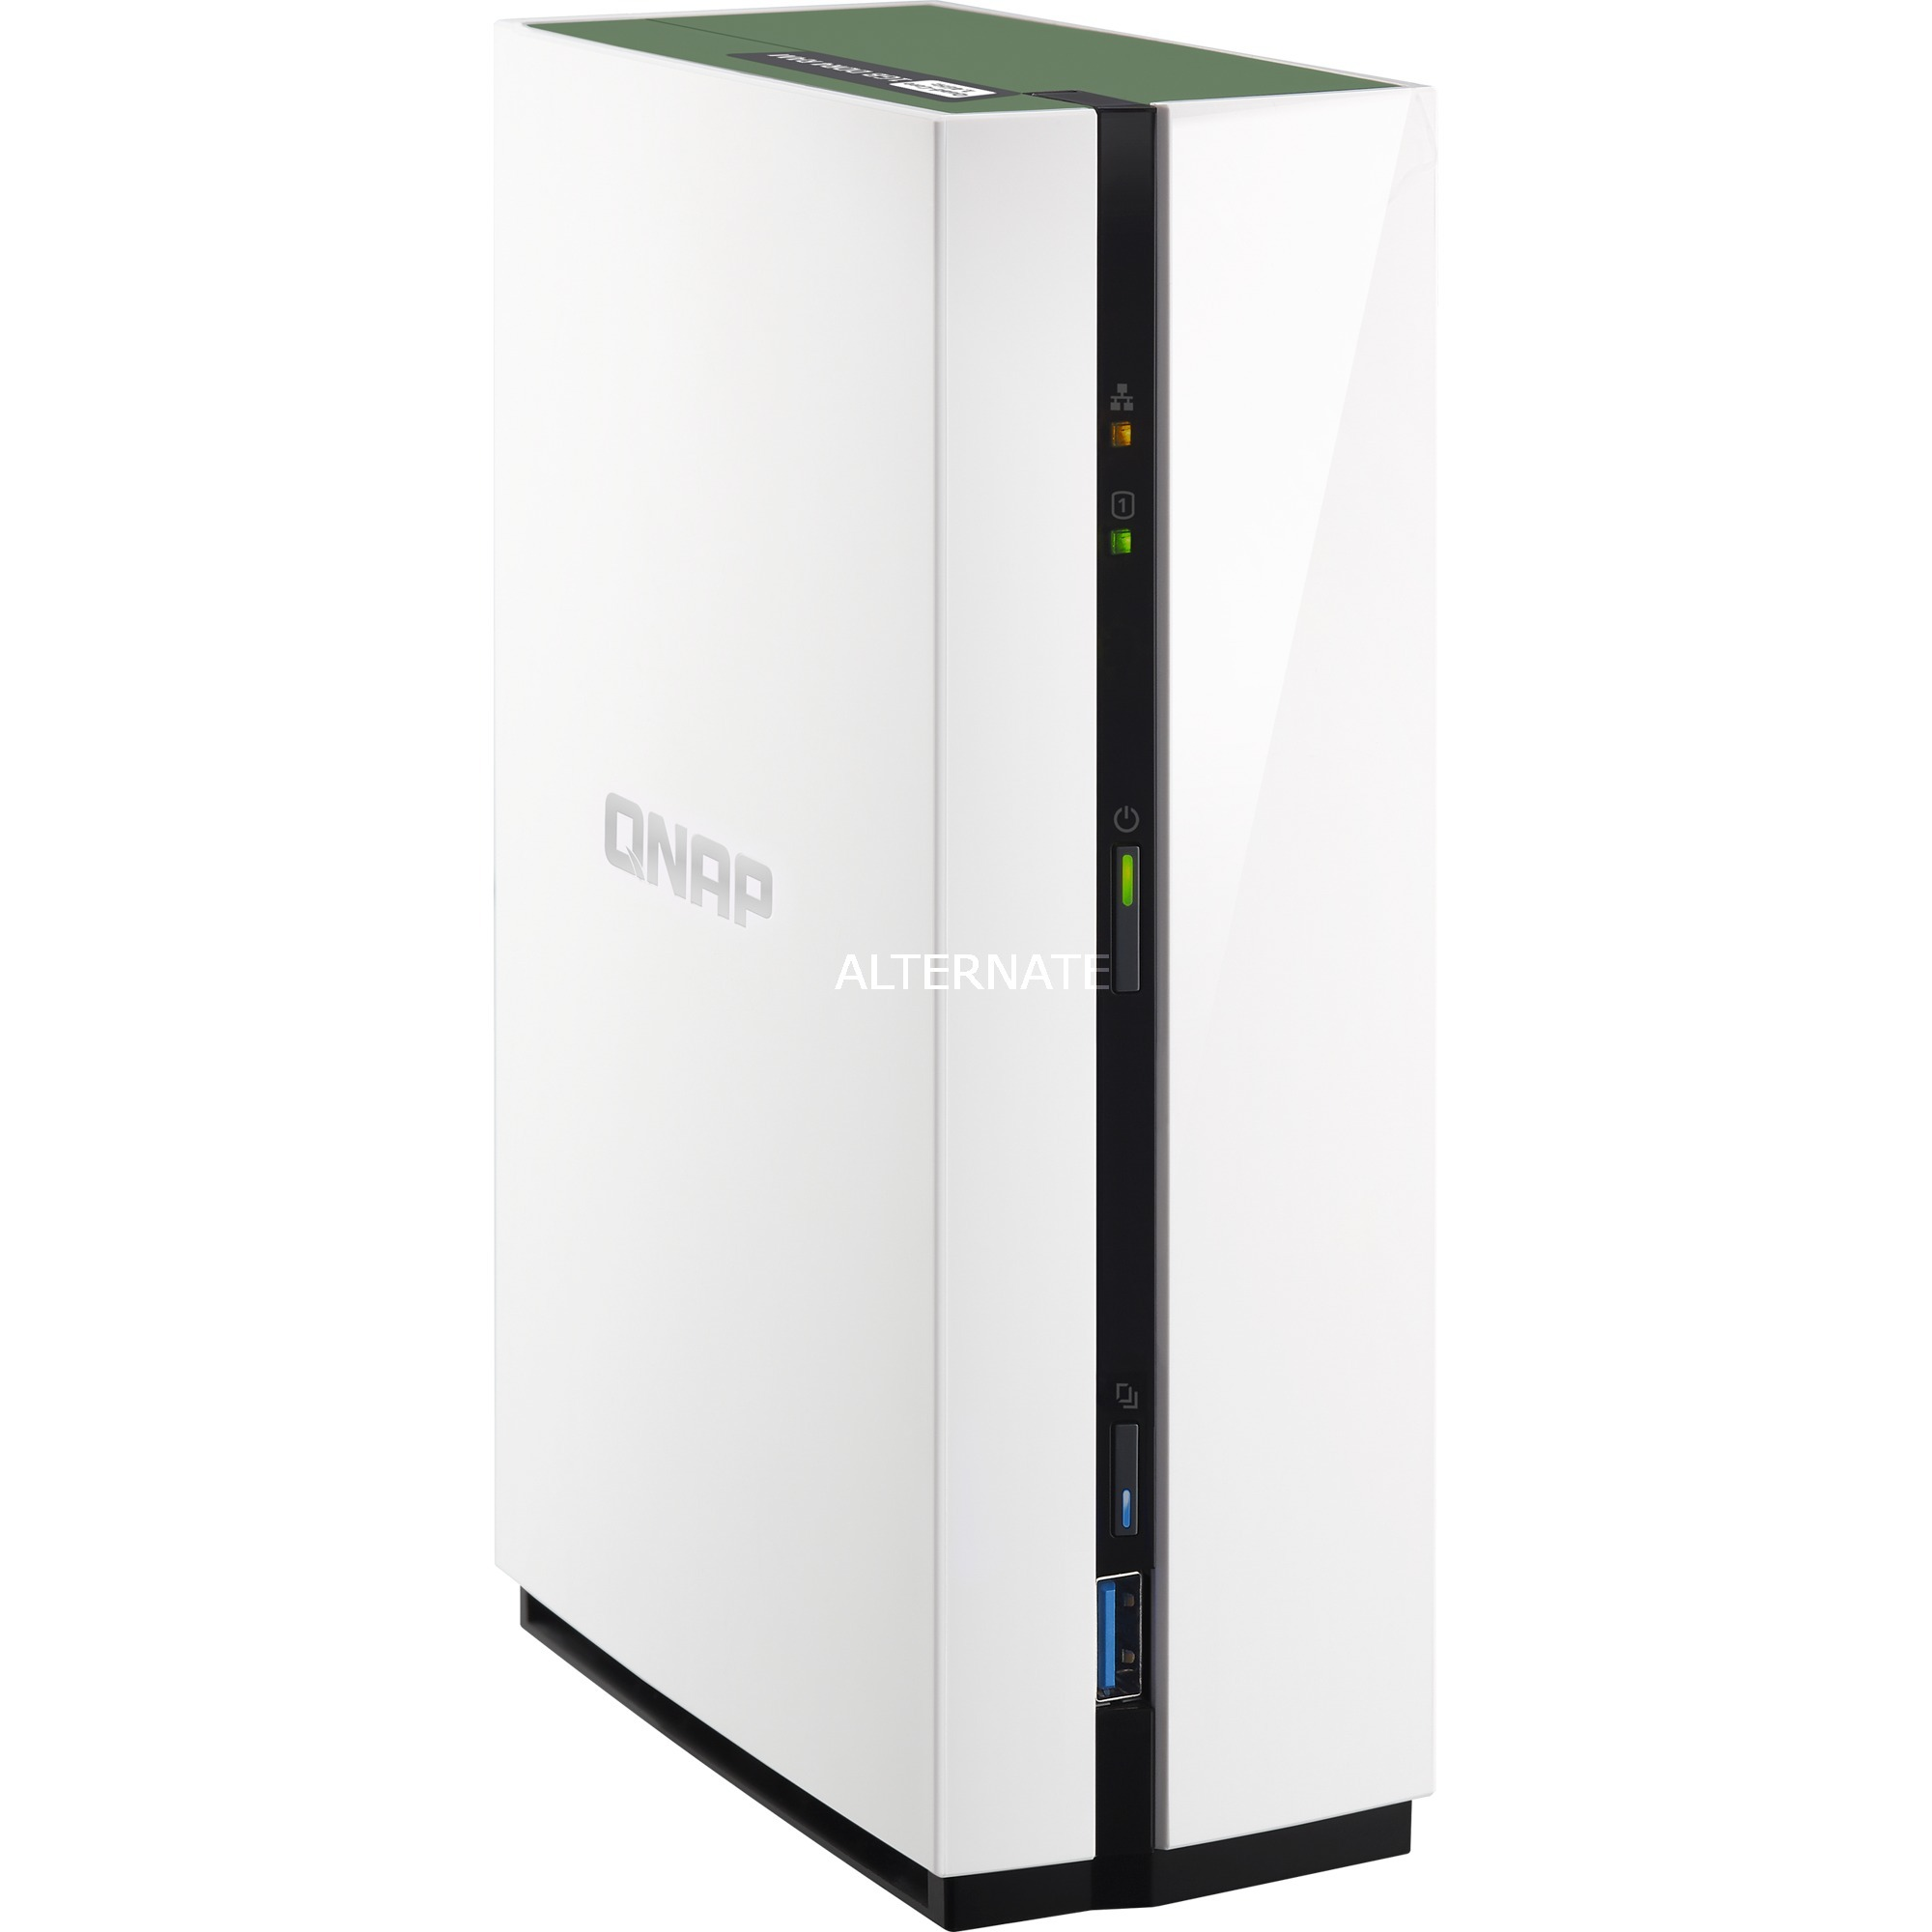 TS-128A servidor de almacenamiento Ethernet Mini Tower Blanco NAS